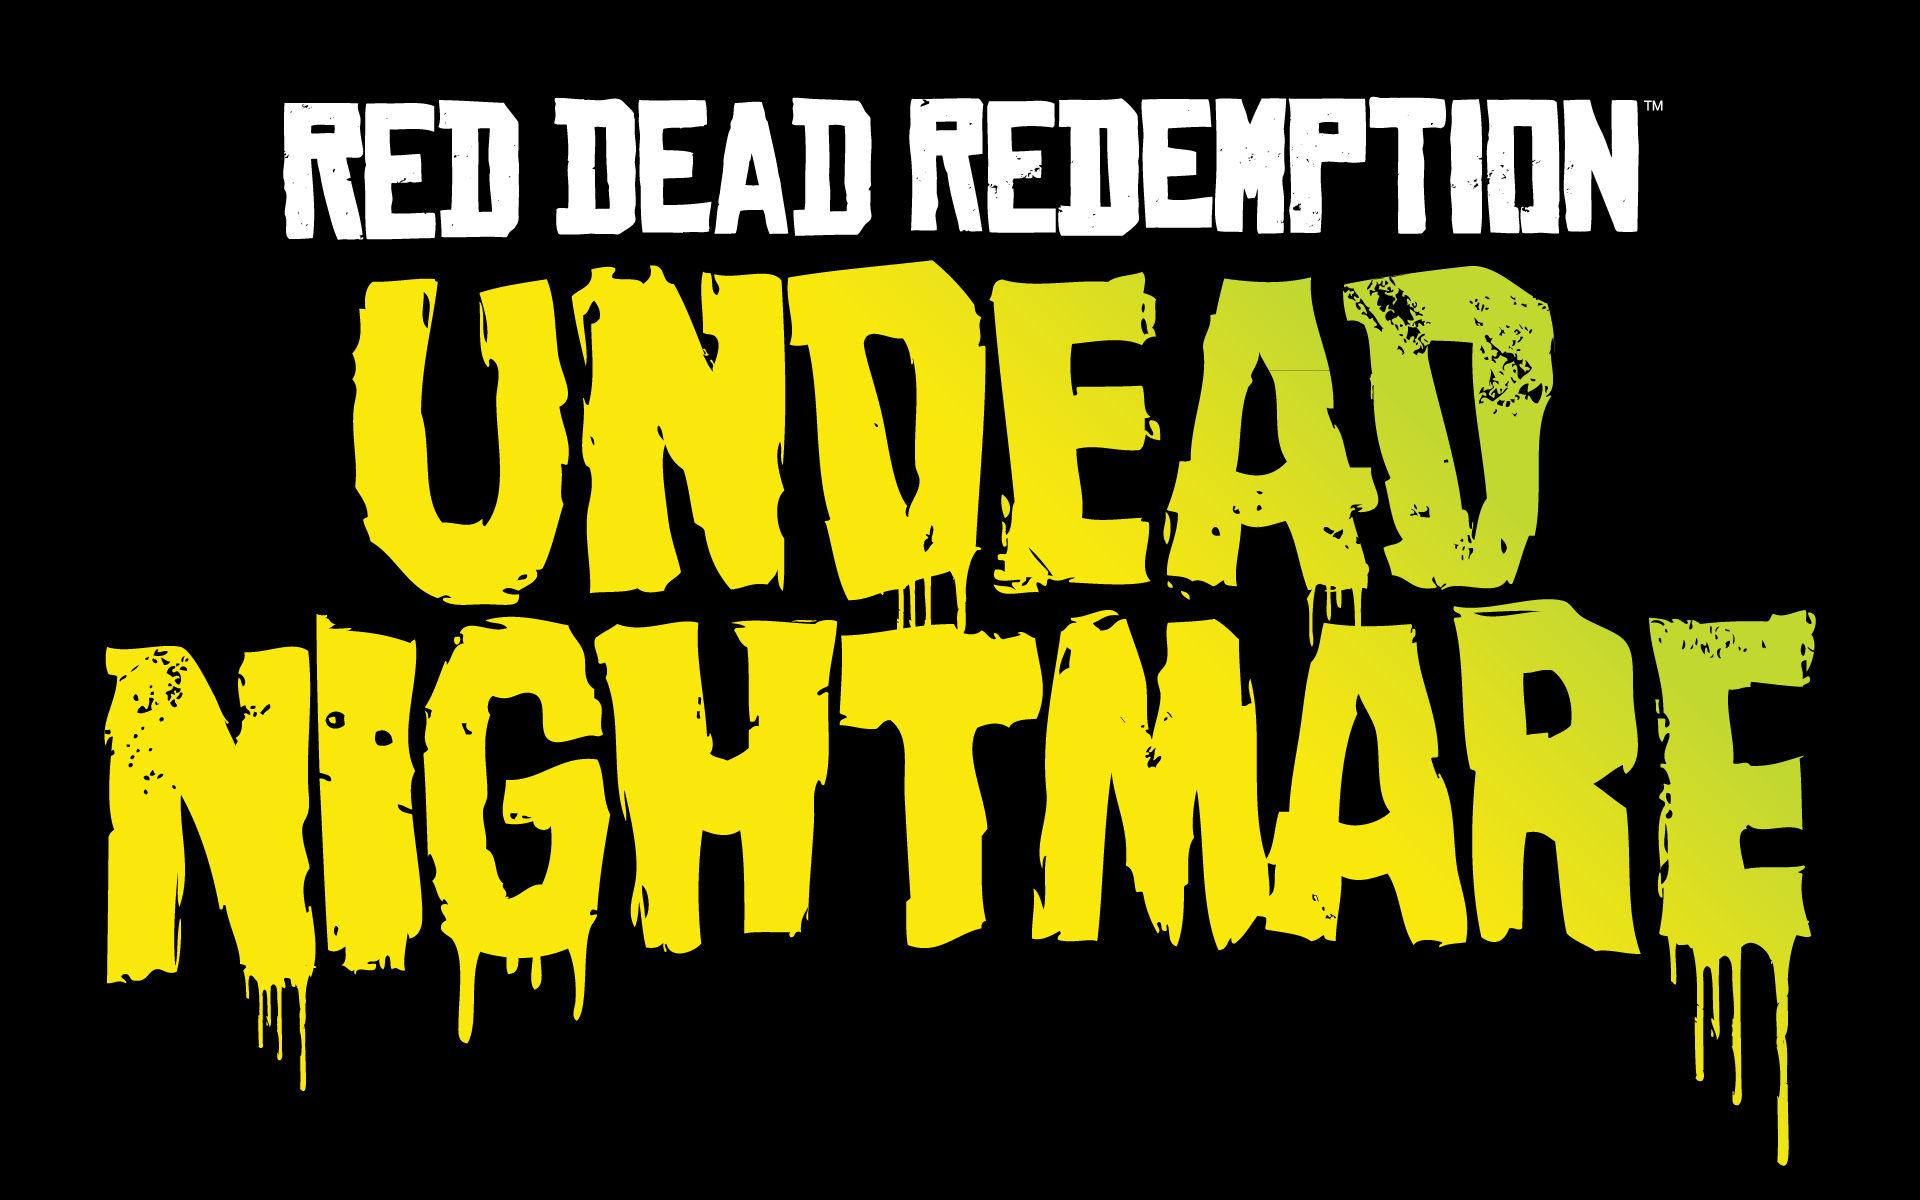 ���� Red Dead Redemption: Undead Nightmare 1920x1200